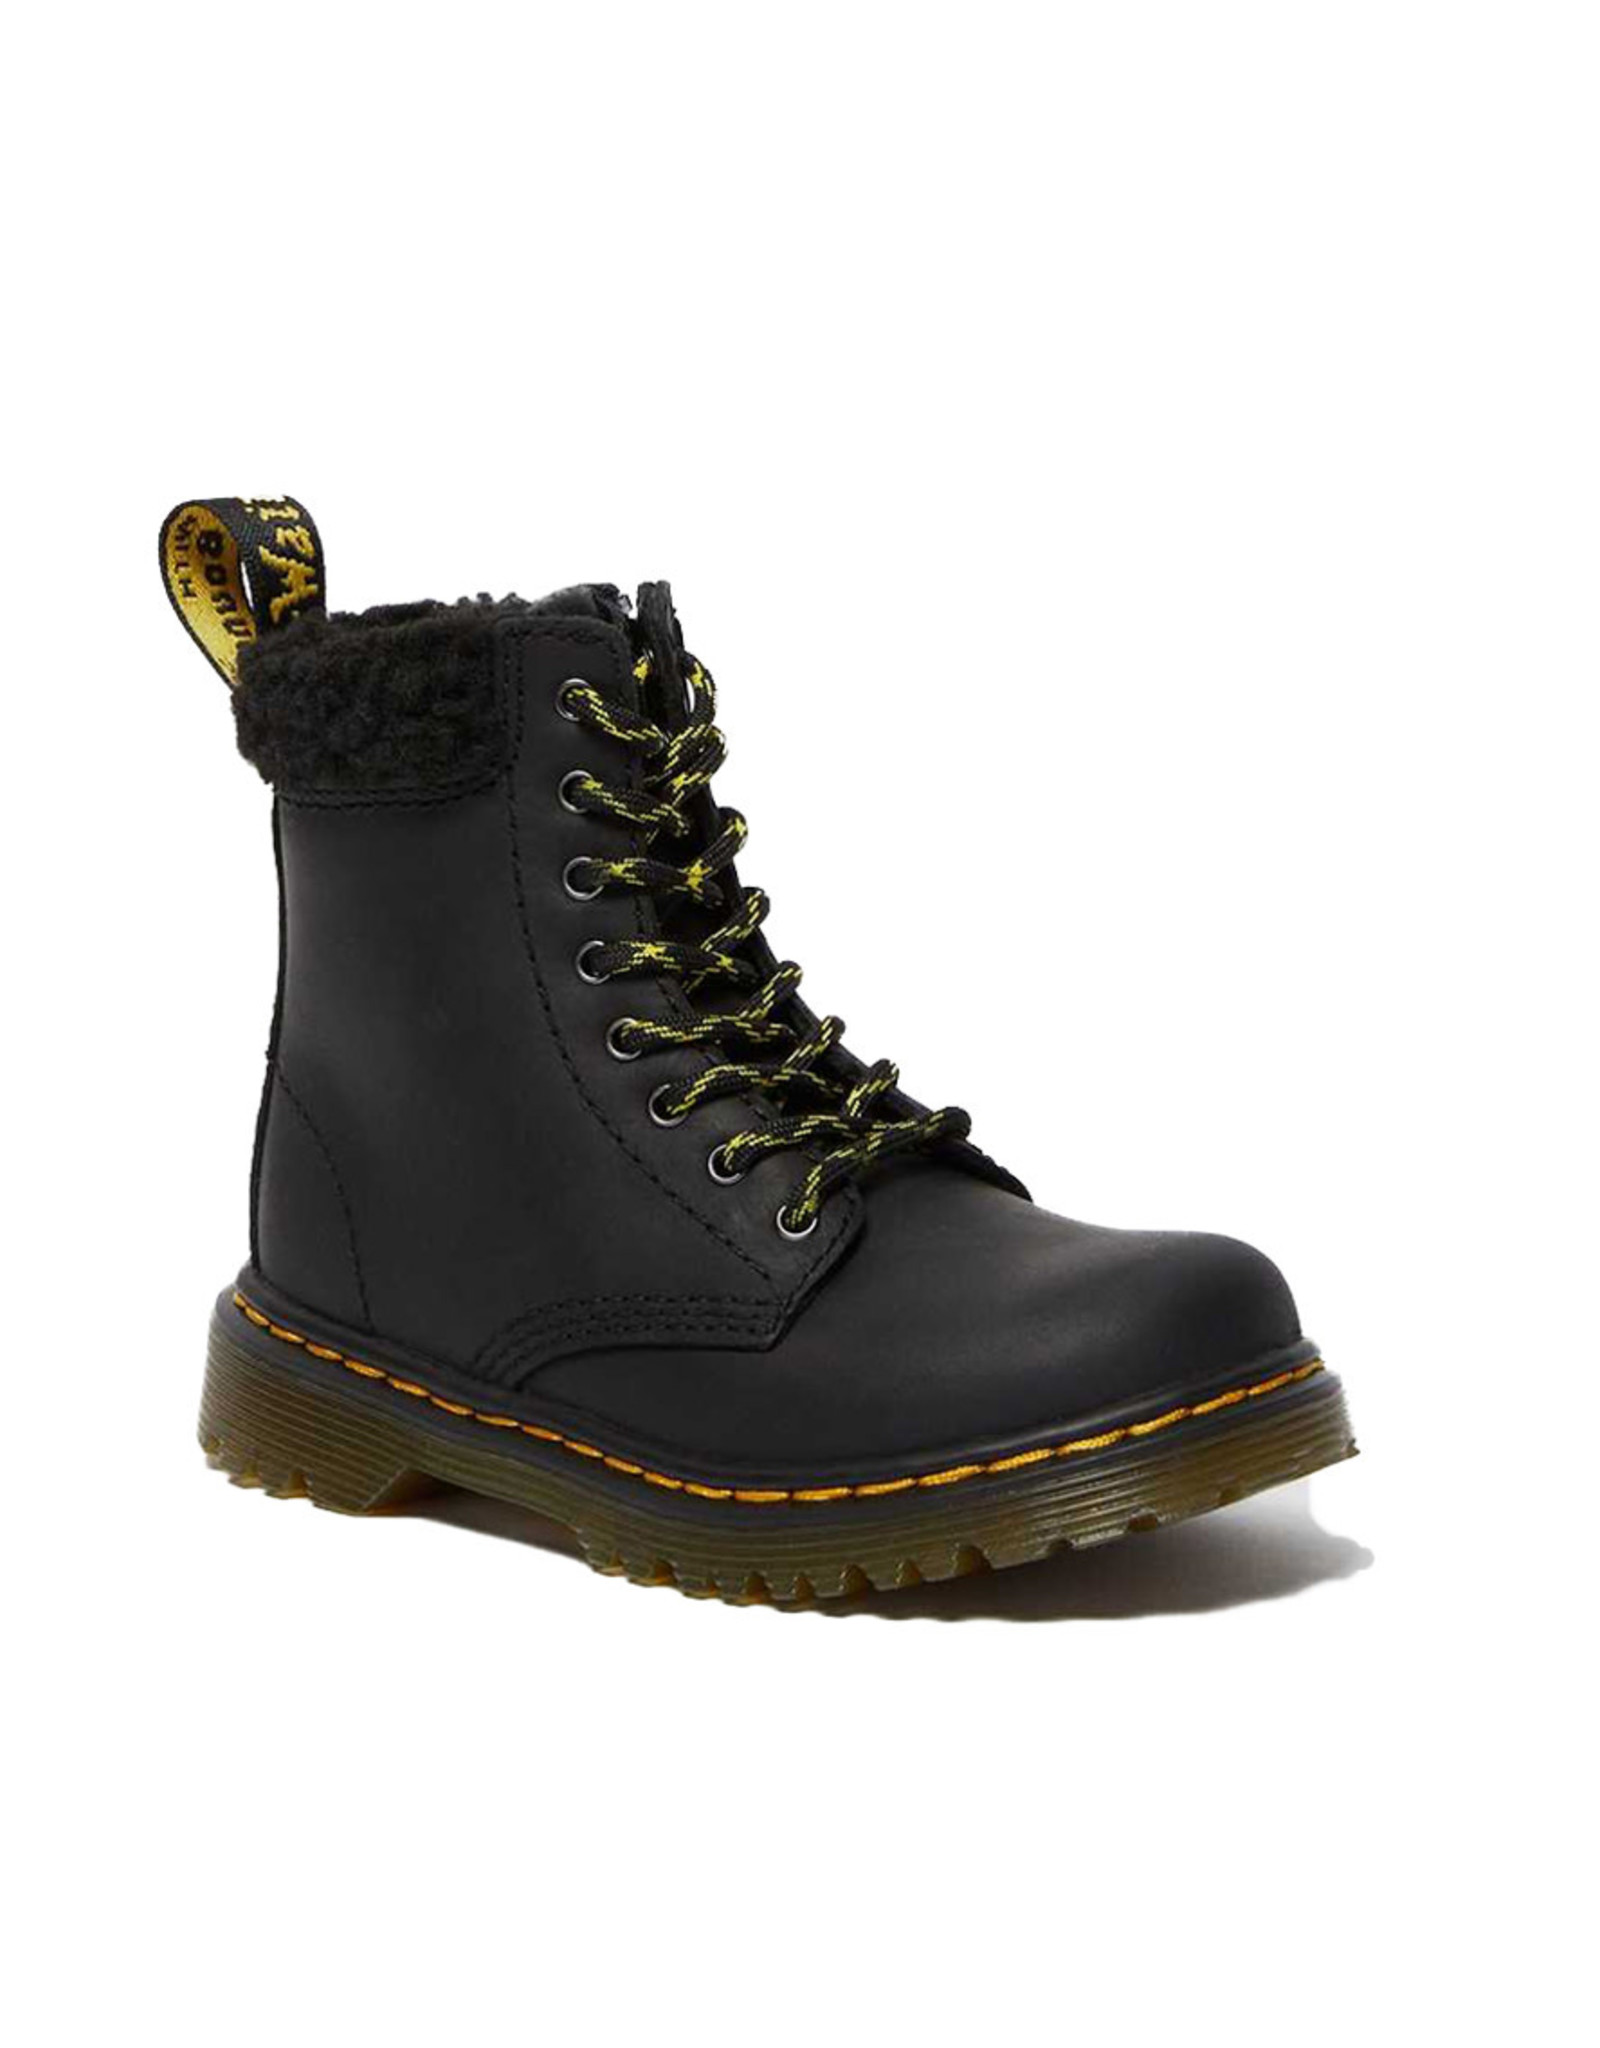 DR. MARTENS 1460 COLLAR YOUTH BLACK REPUBLIC WP + BORG FLEECE Y815YCB-R26166001